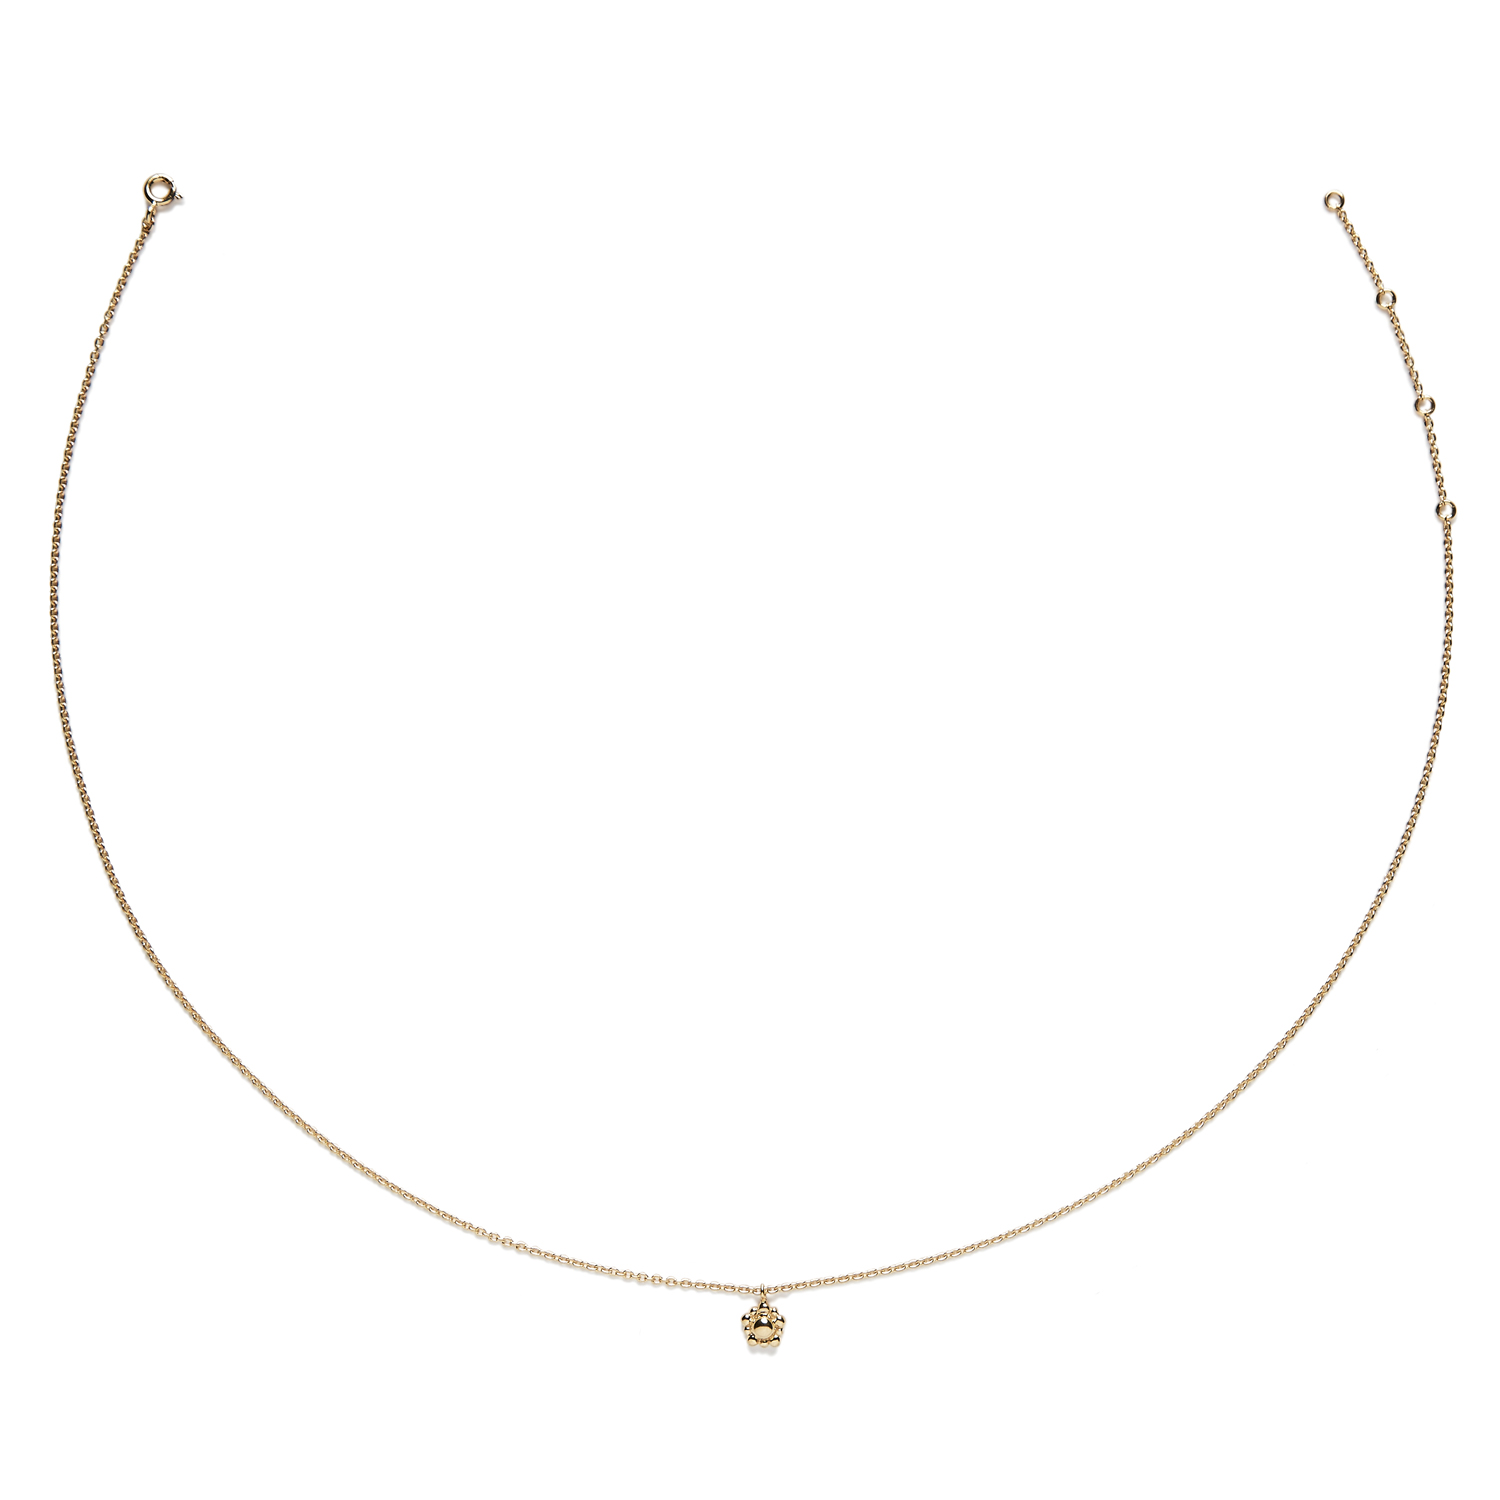 Collier Bouton d'or